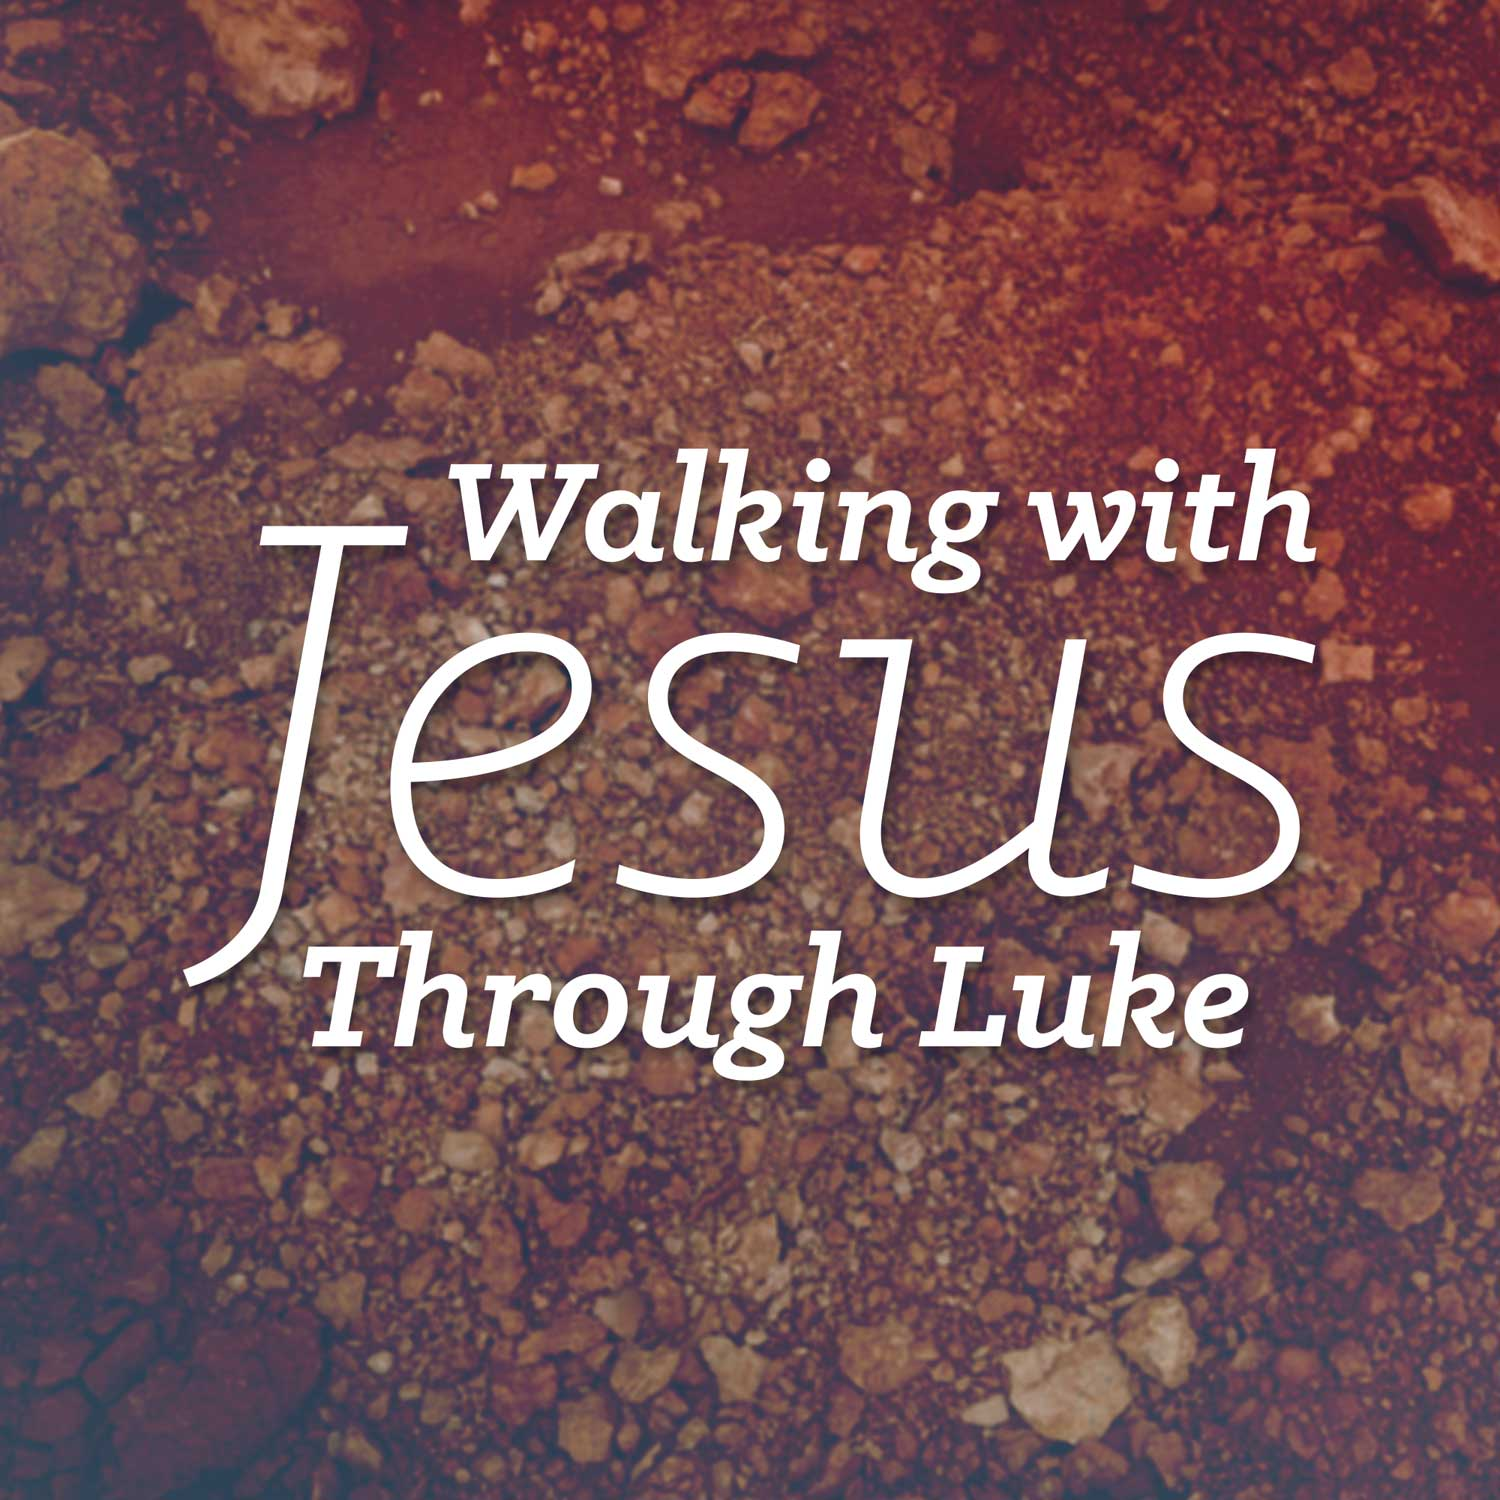 Walking With Jesus Through Luke